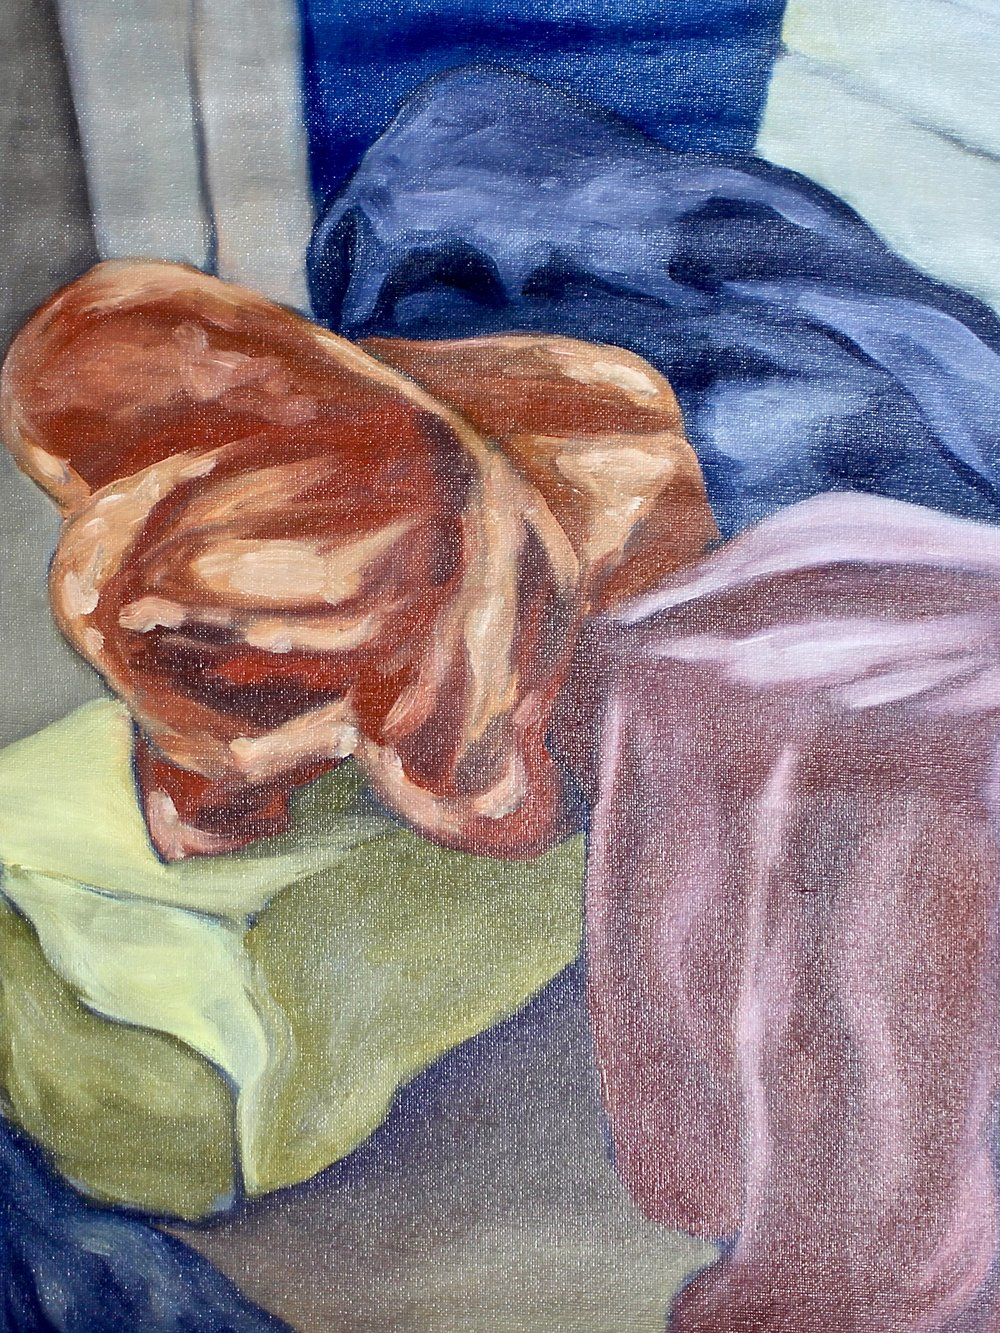 Fabric Study -  2006 oil on canvas 38cm x 51cm